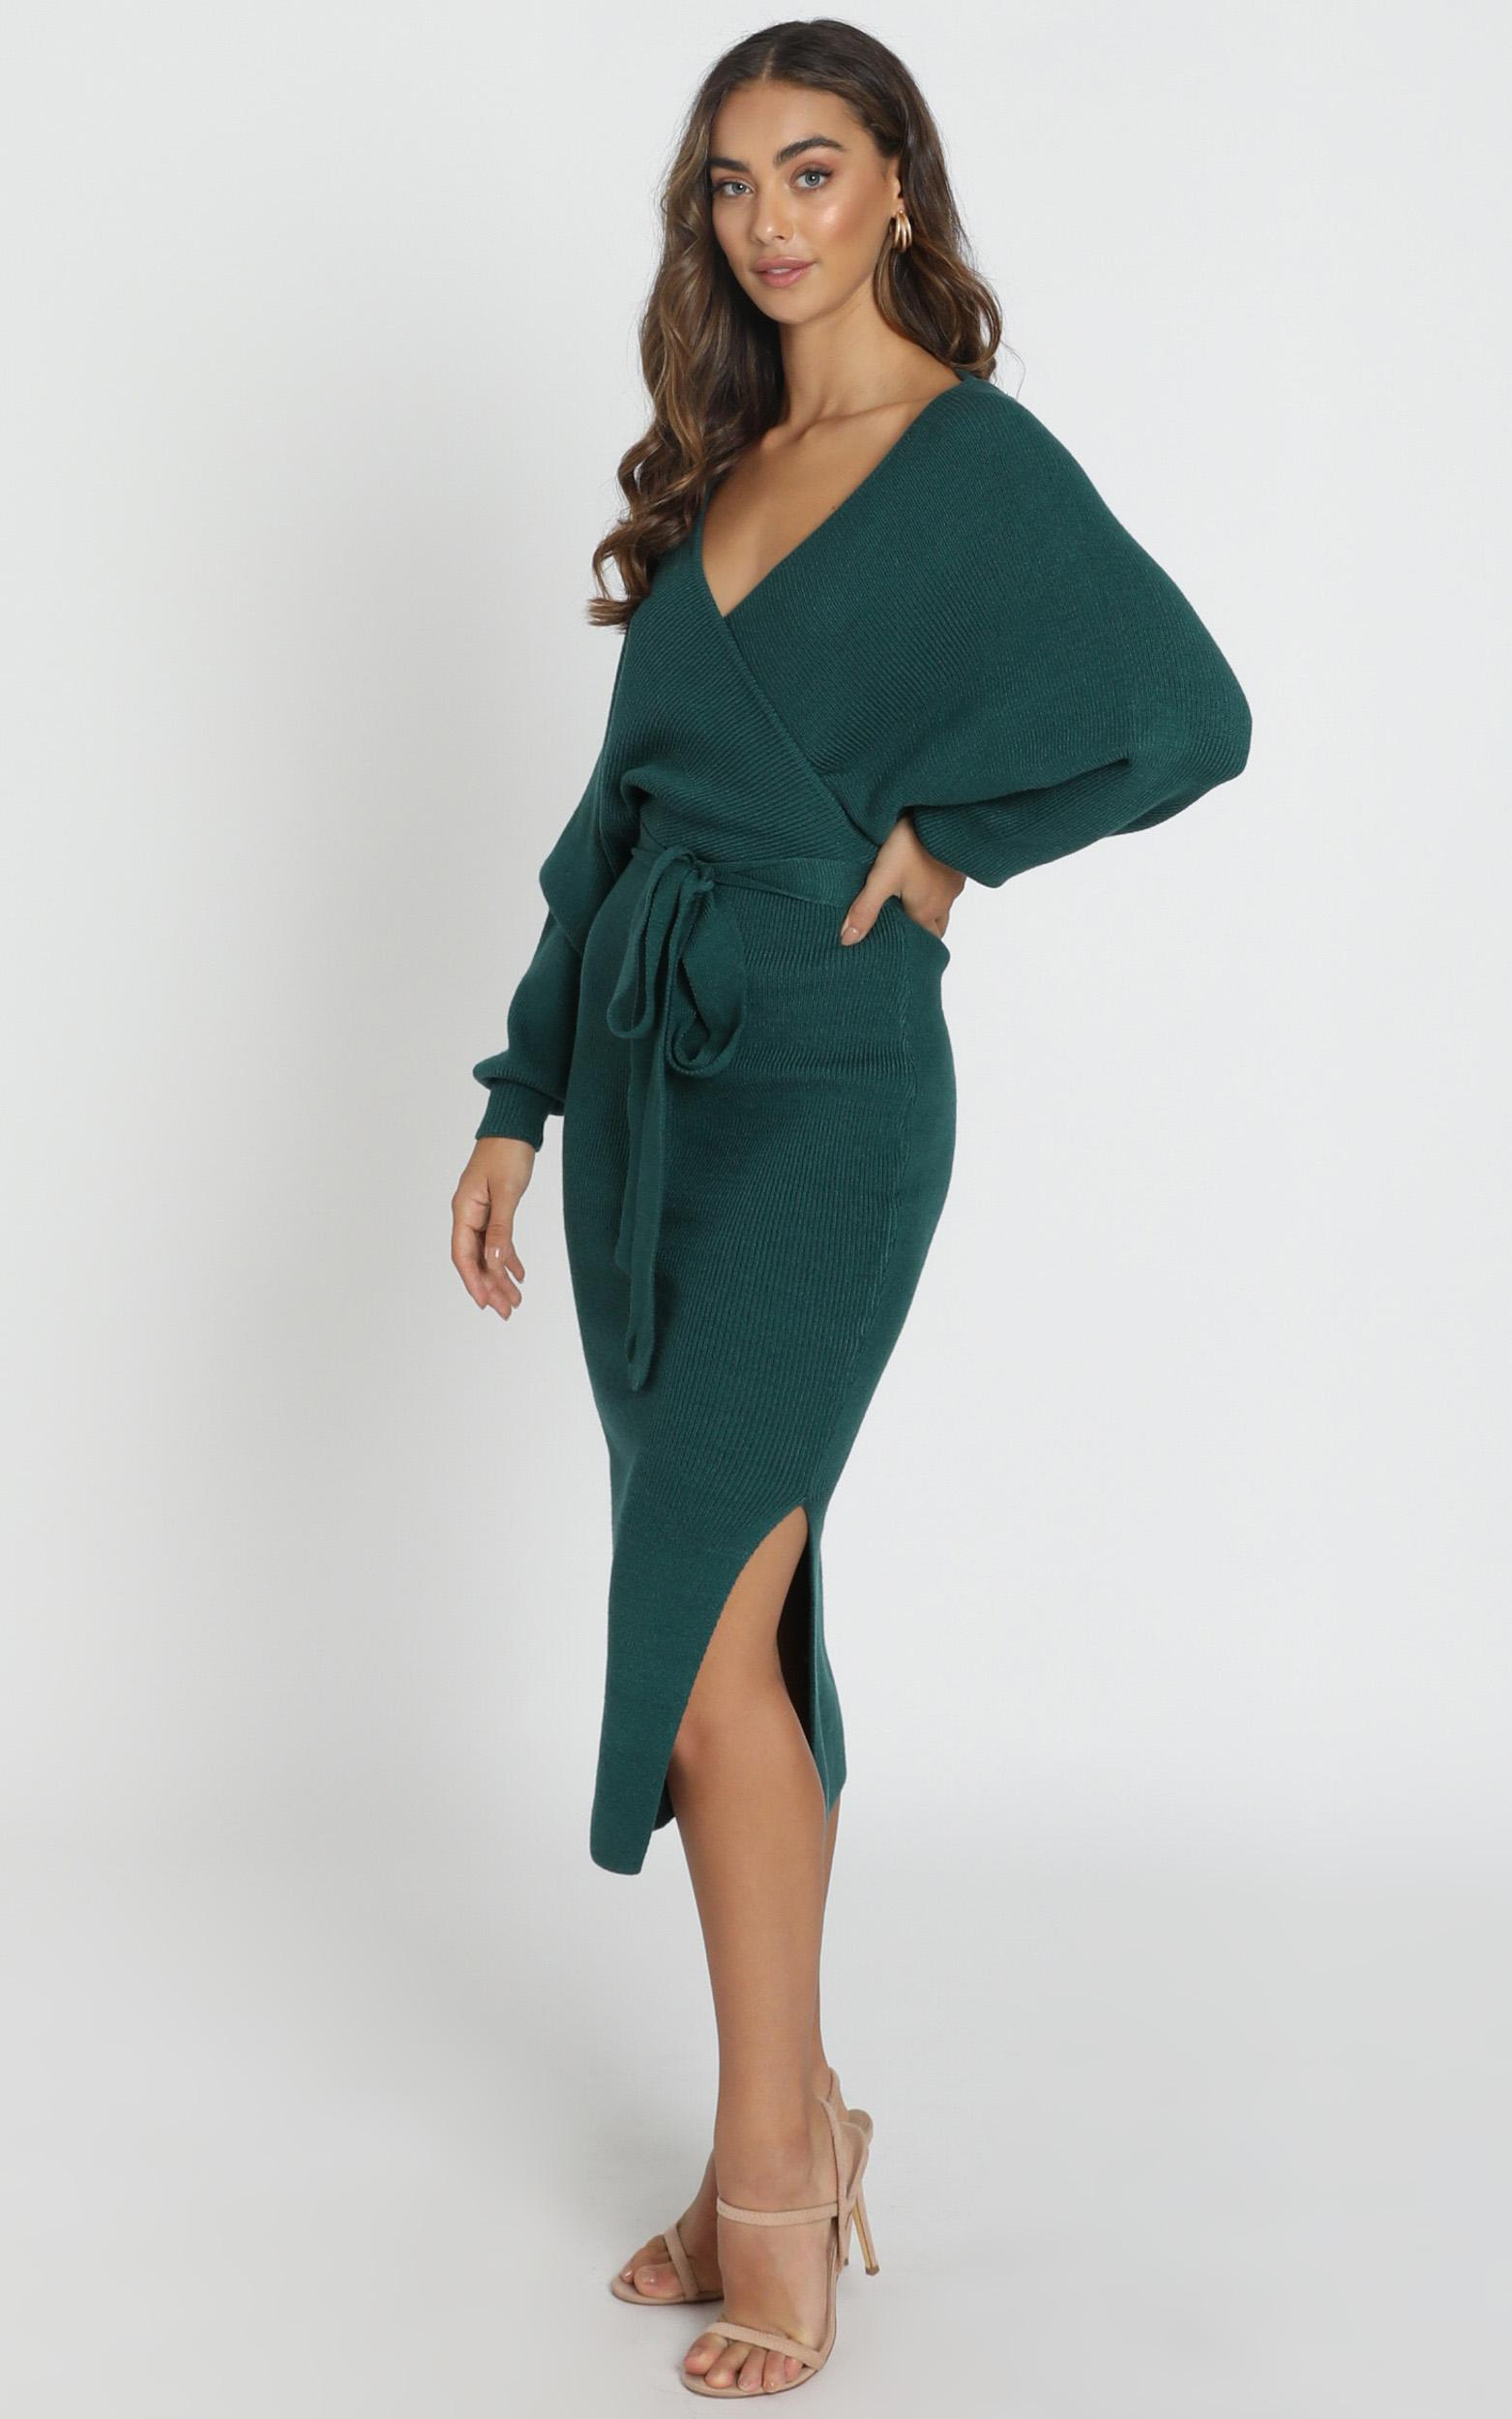 Over The World knit dress in forest green - 6 (XS), Green, hi-res image number null